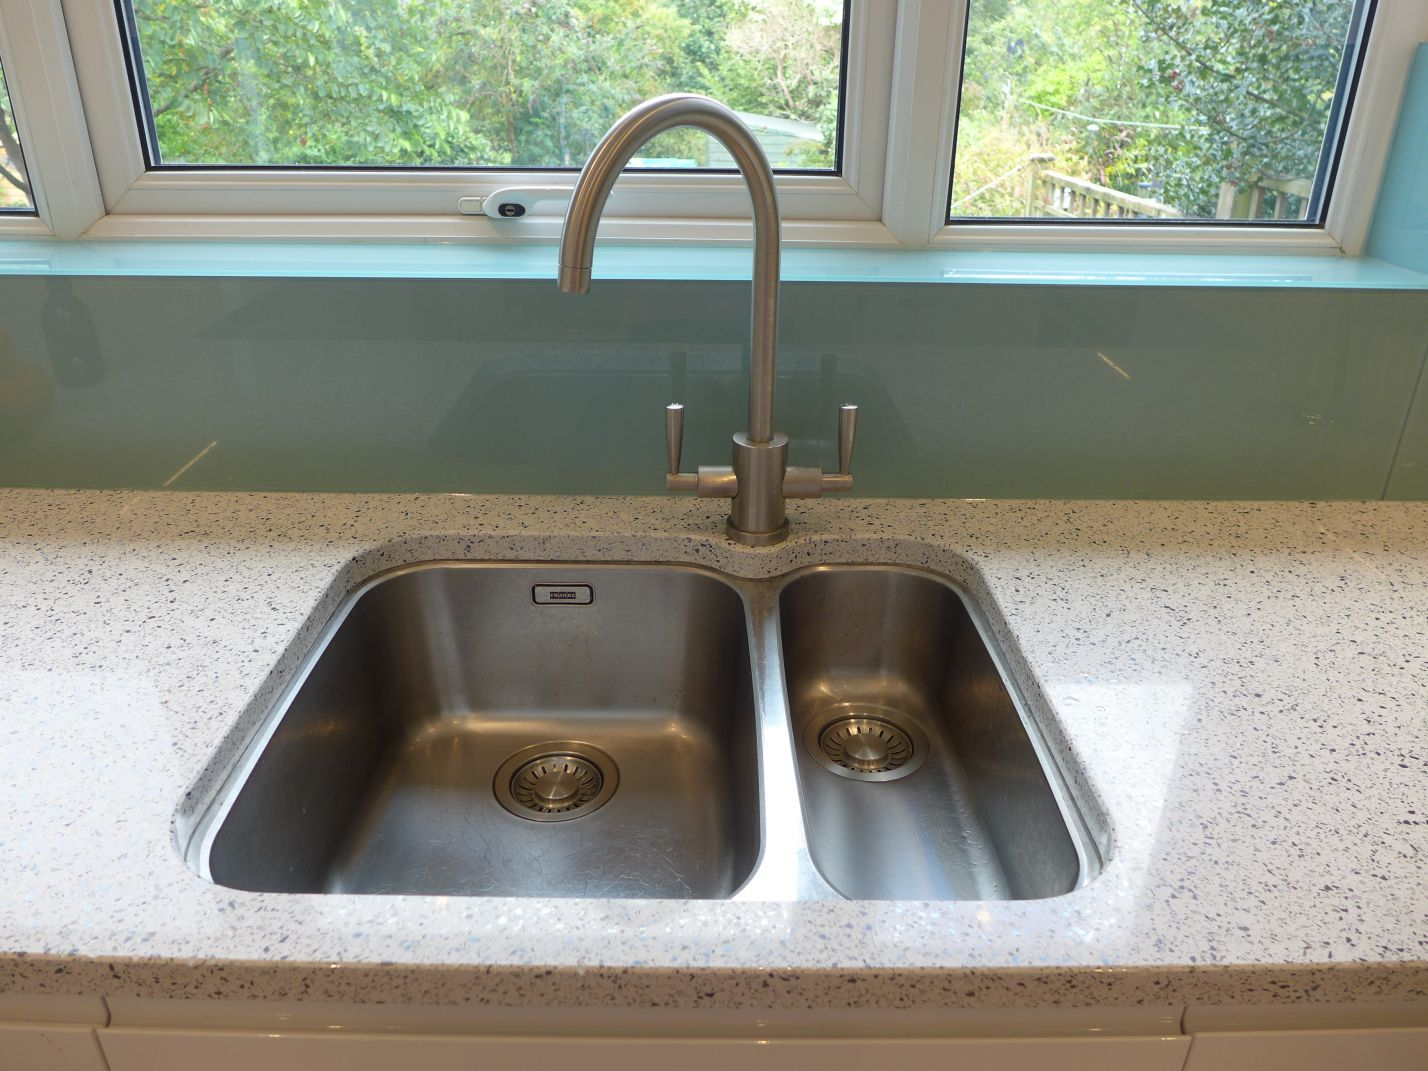 here is some advice on choosing kitchen sinks and taps; here a swan neck tap with undermount sink